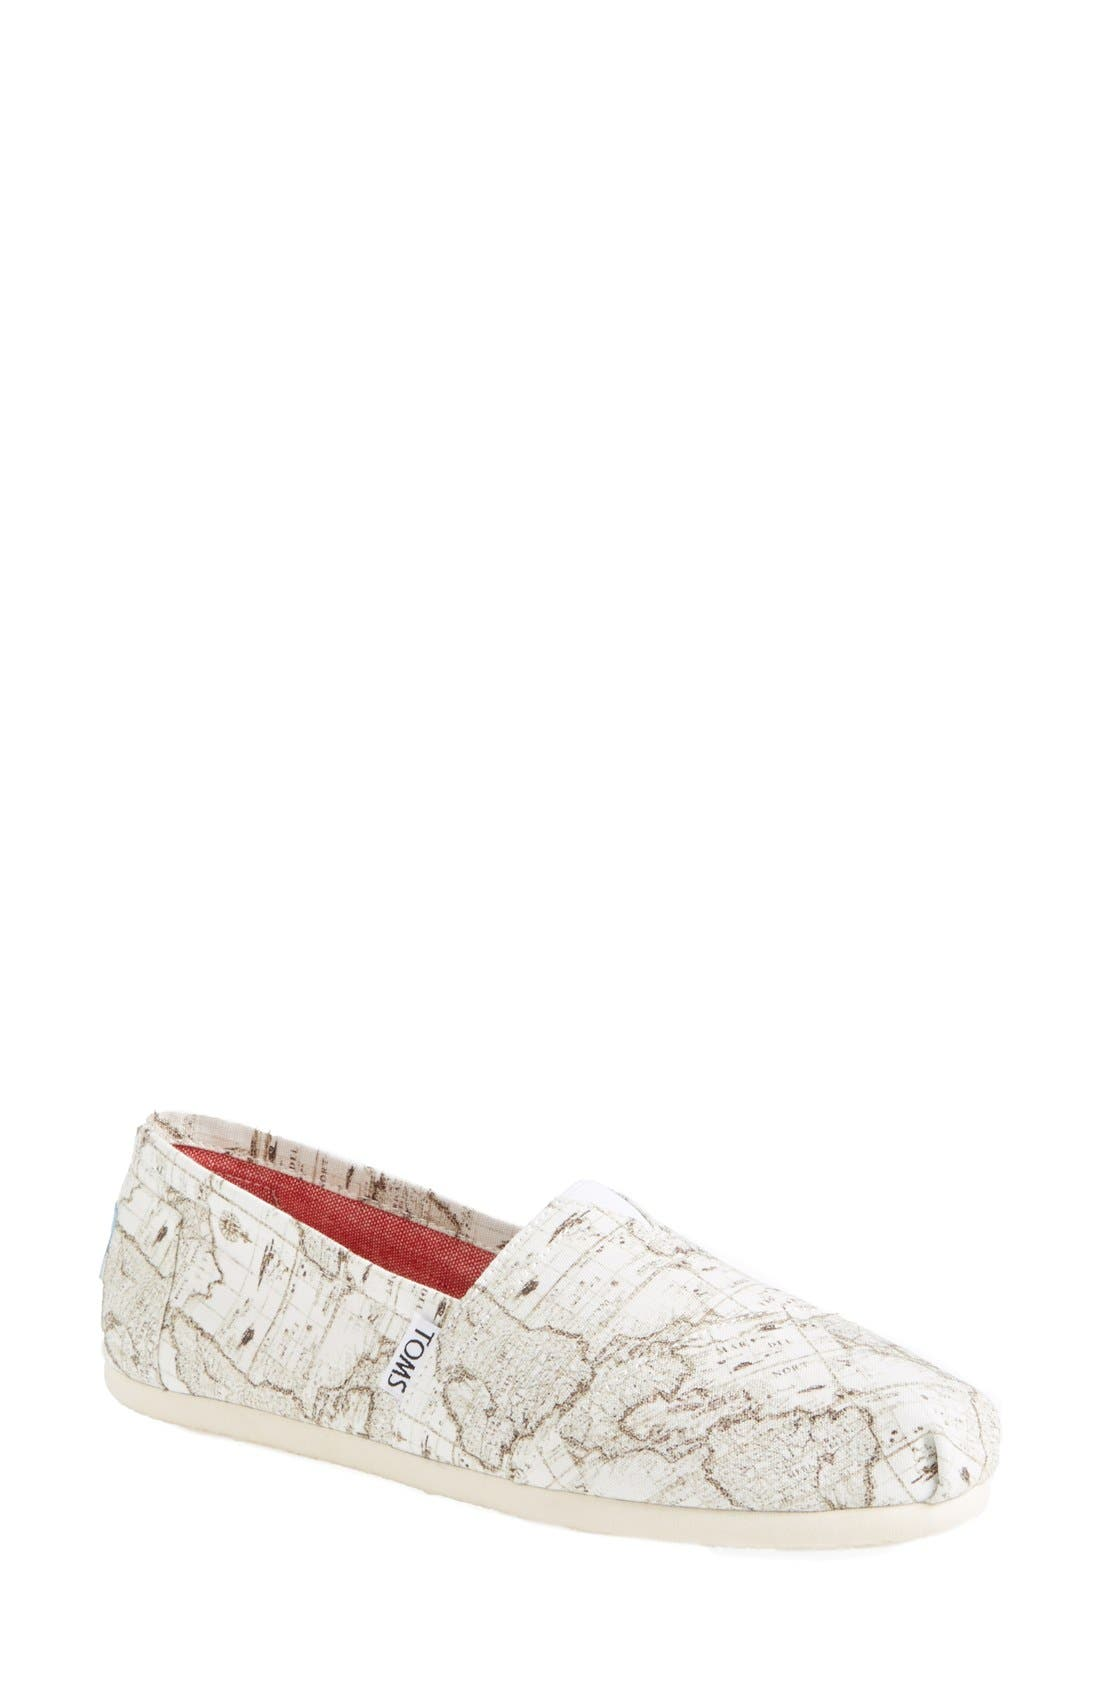 Alternate Image 1 Selected - TOMS 'Classic - Voyage Map' Slip-On (Women)